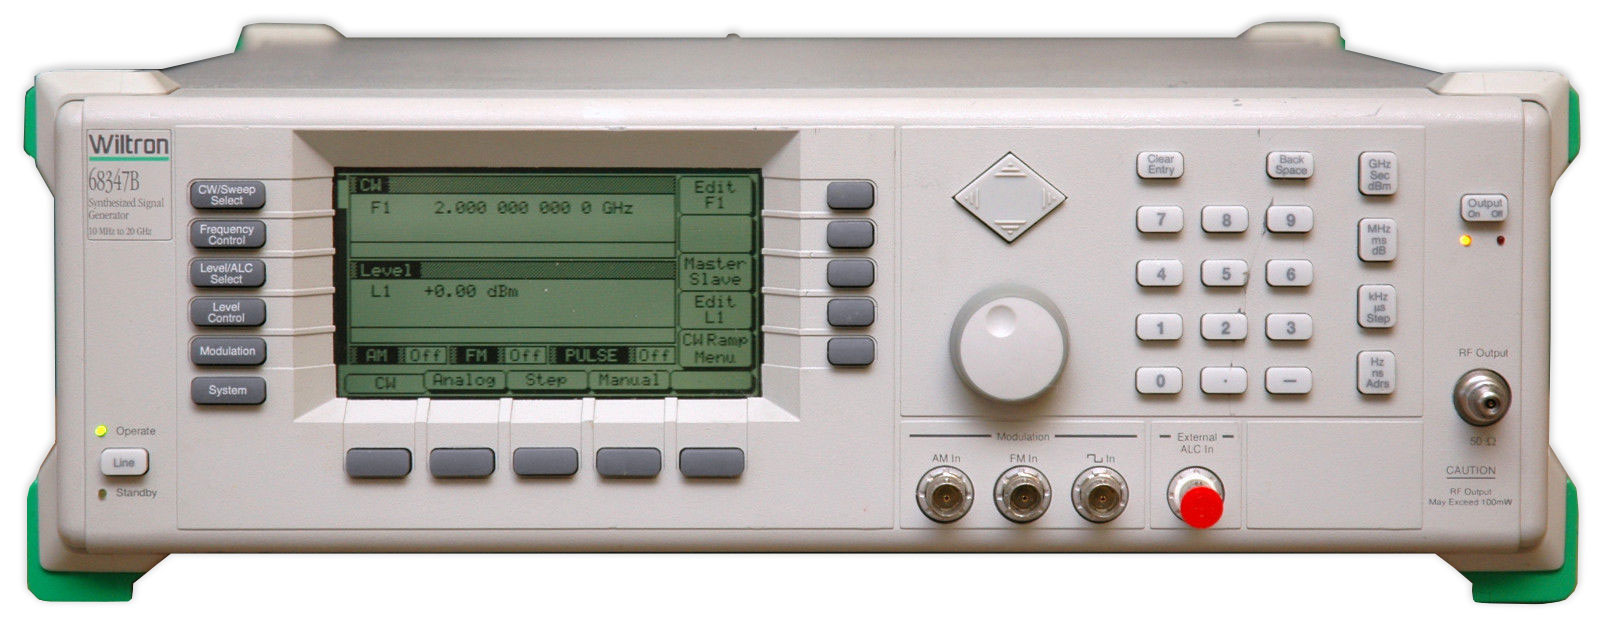 Anritsu 68347B Sweep/Signal Generator 10MHz to 20GHz